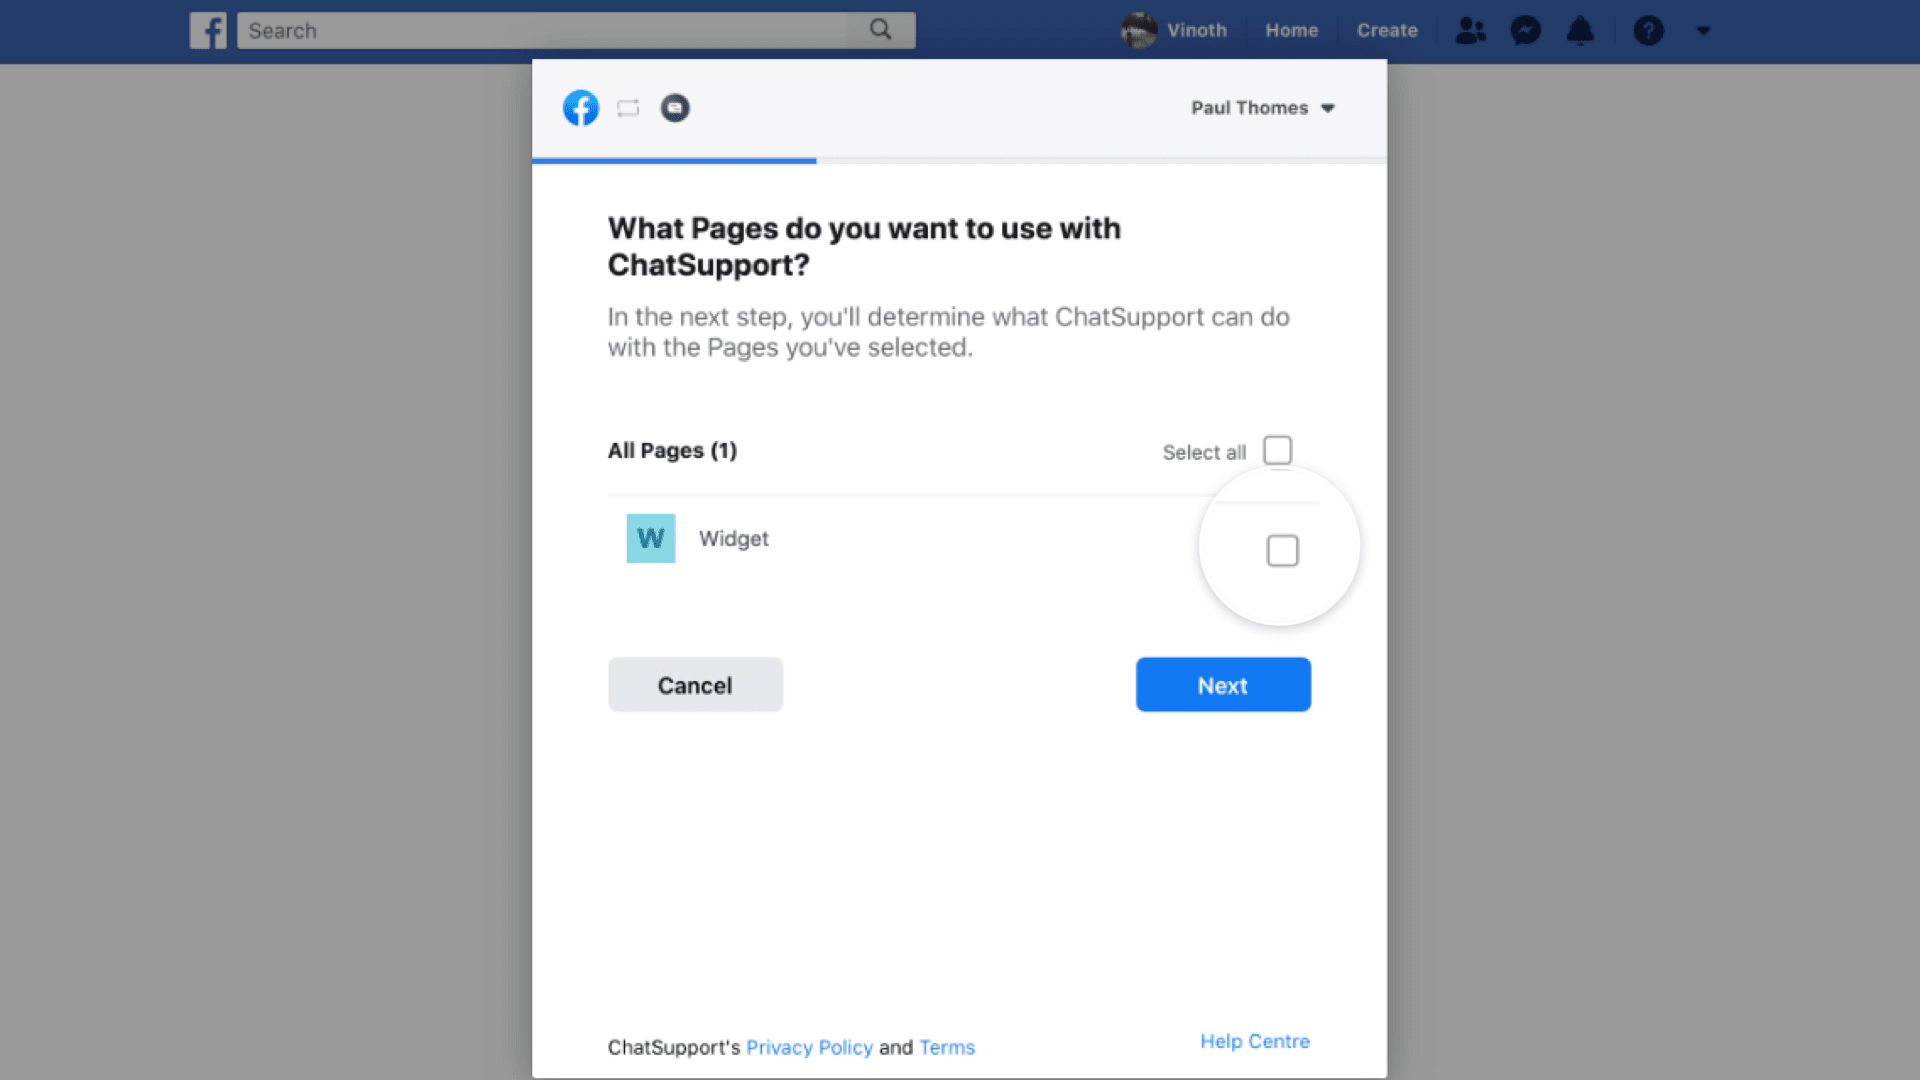 facebook settings to select the pages to use with chatsupport.